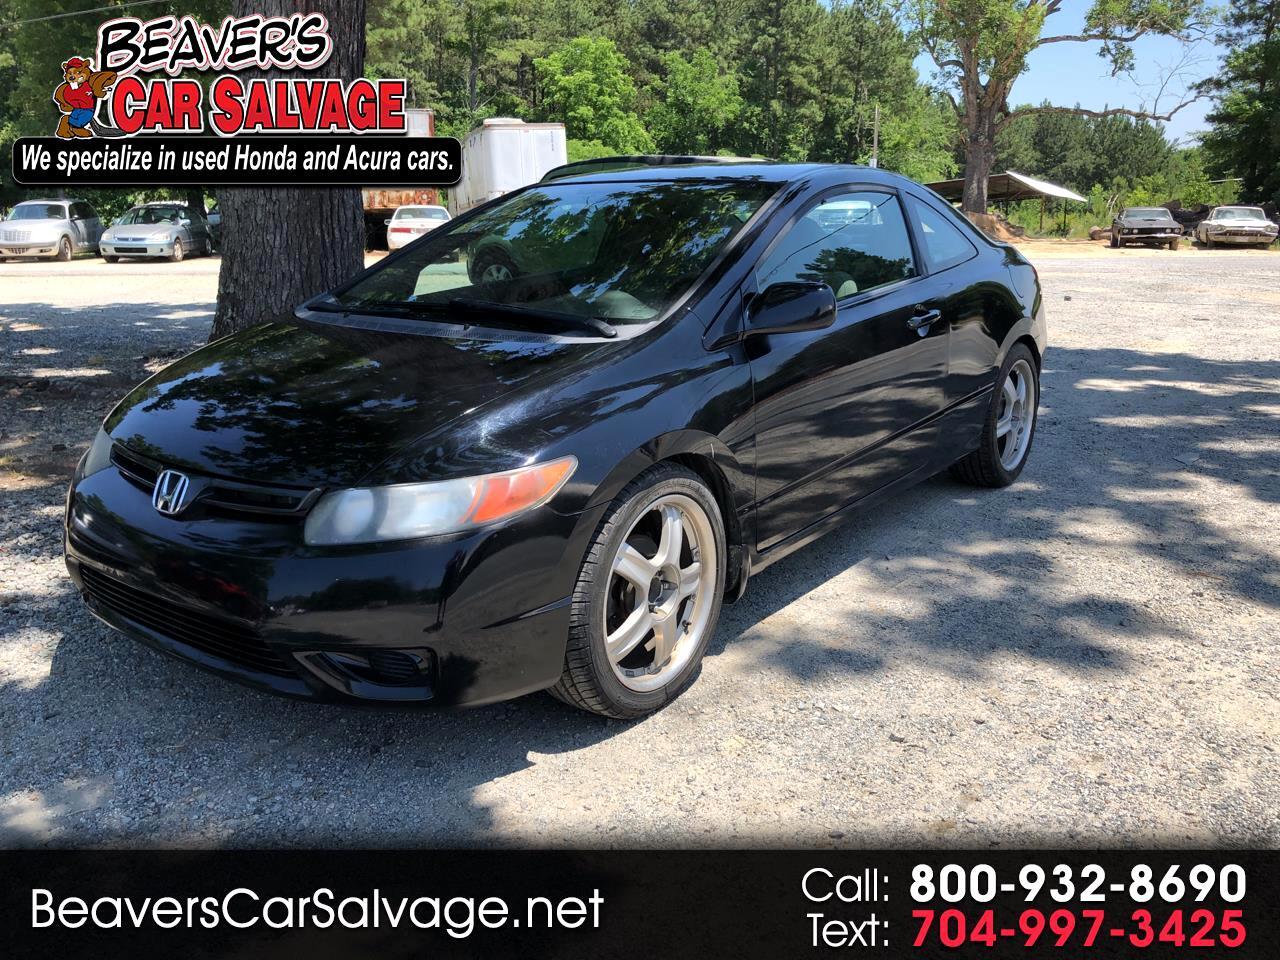 2008 Honda Civic Cpe 2dr Man LX